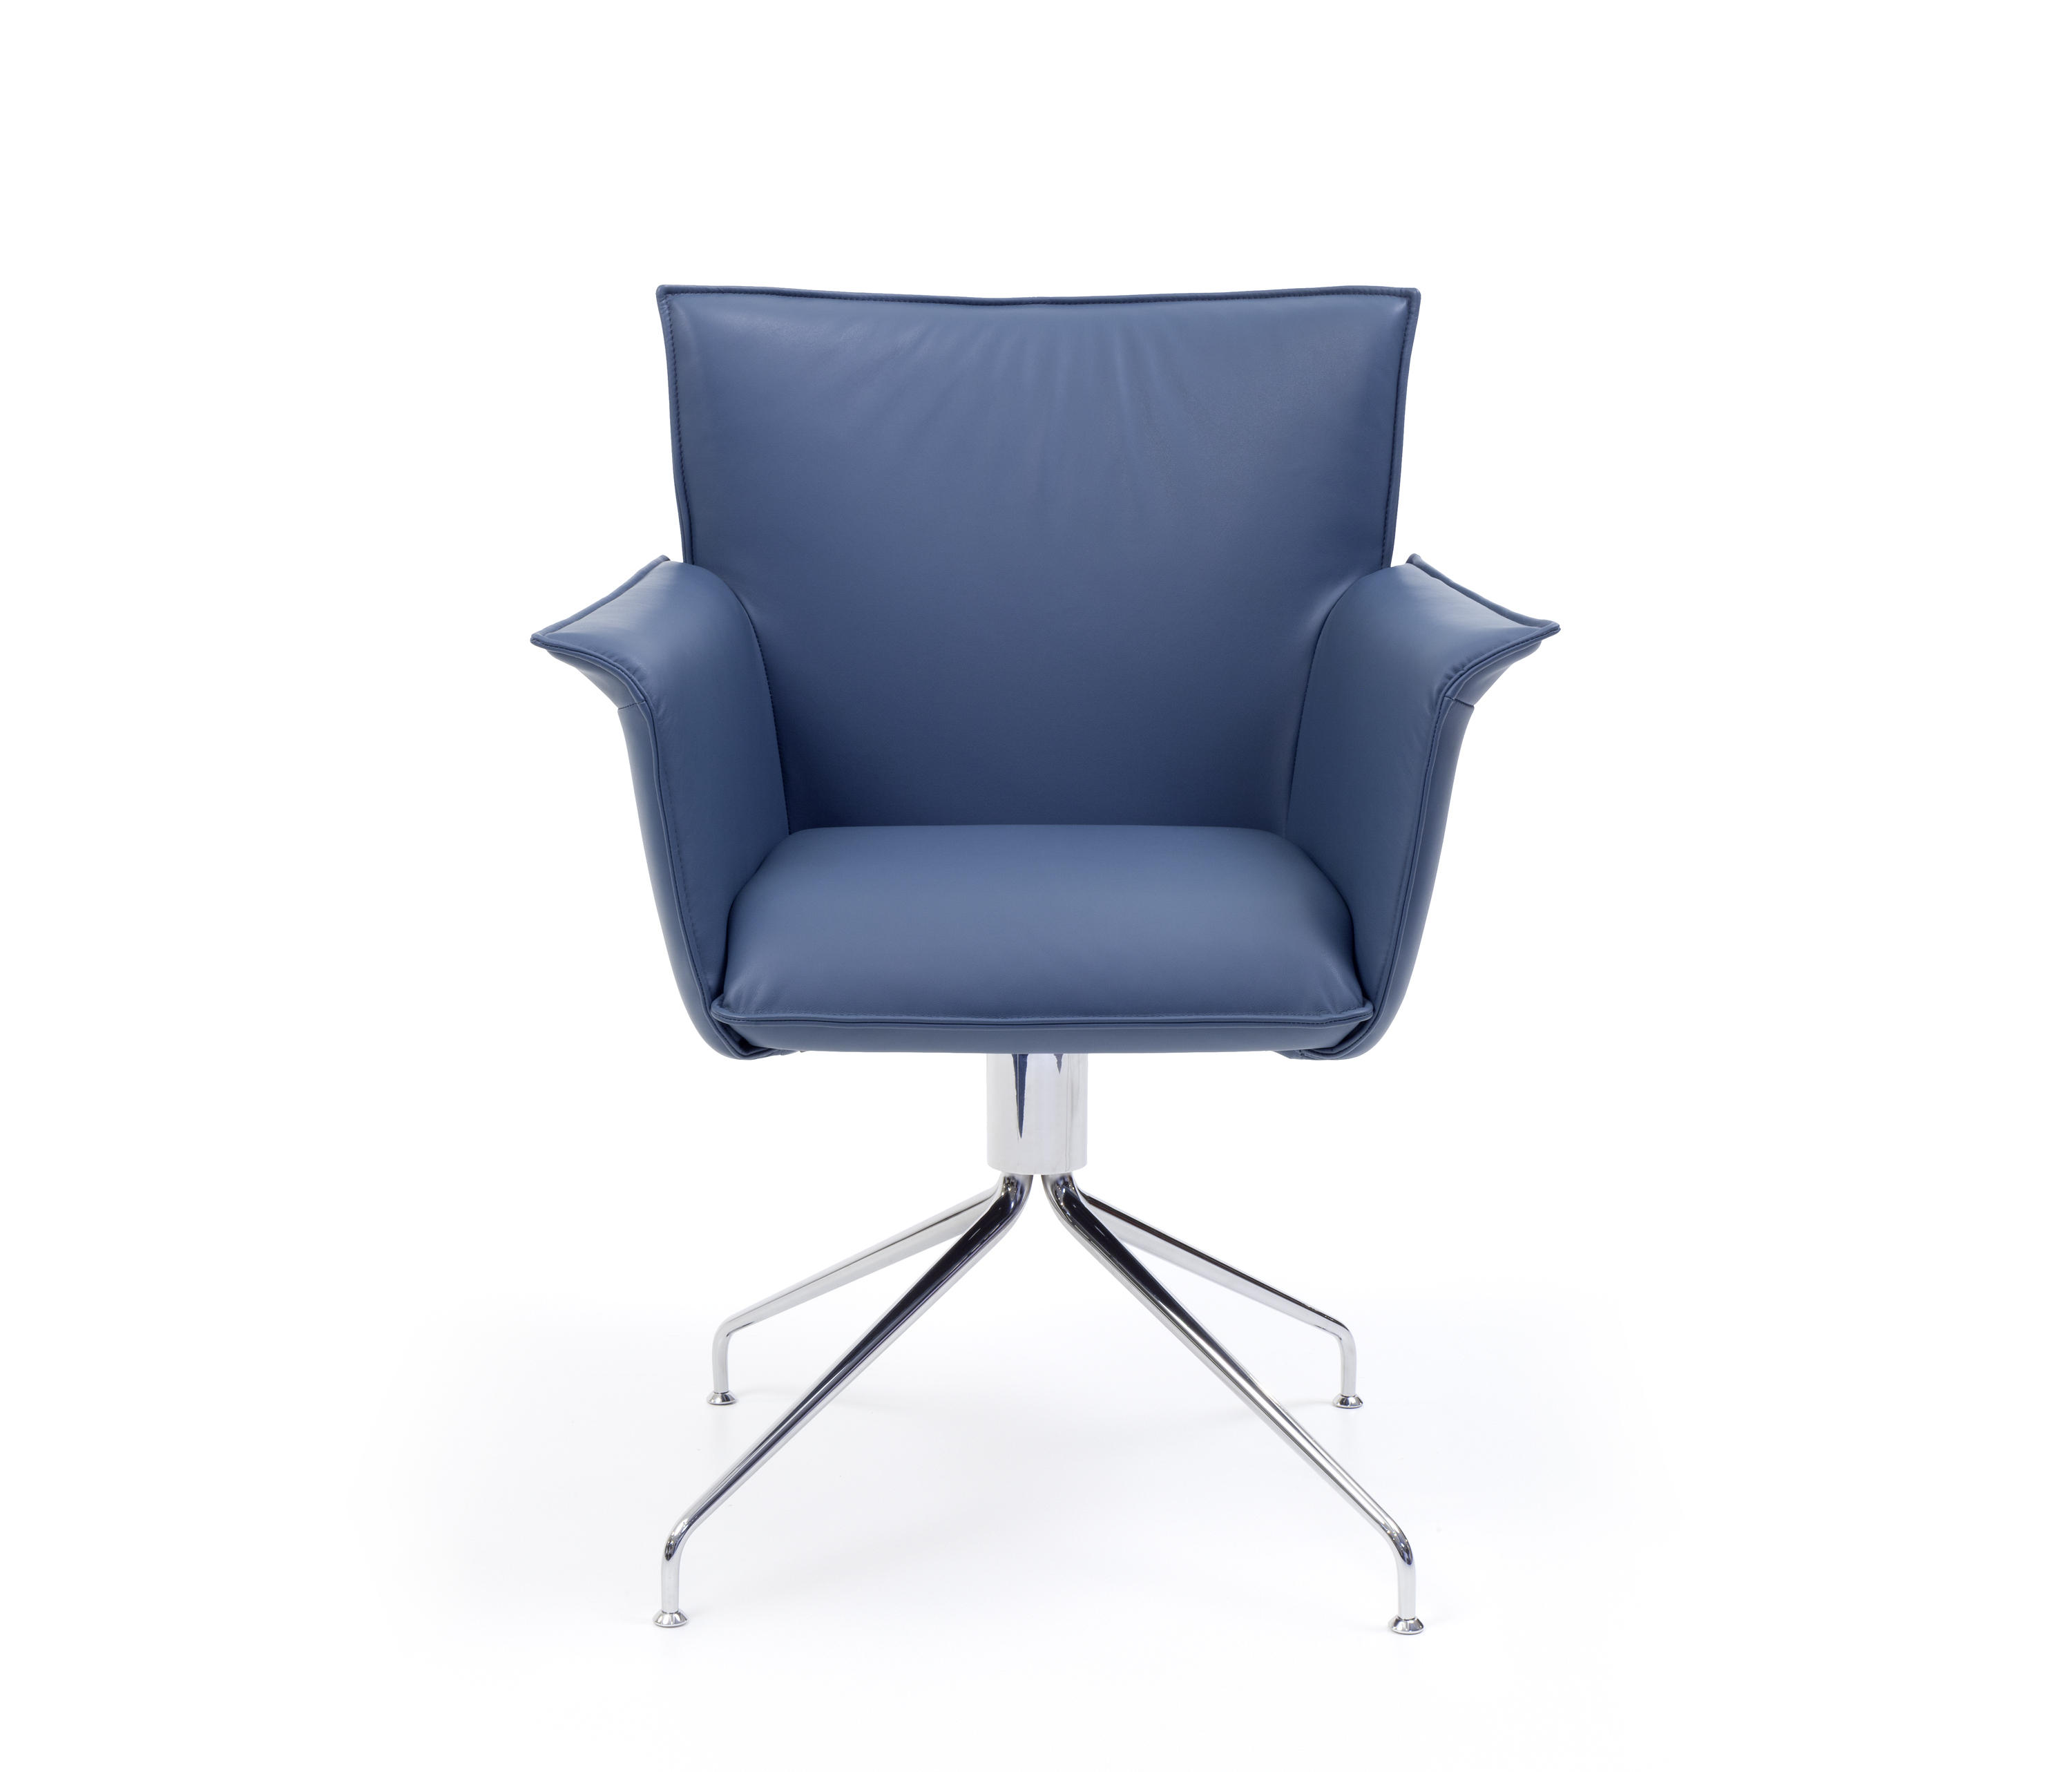 rolf benz 630 by rolf benz conference chairs armchairs seating rolf benz